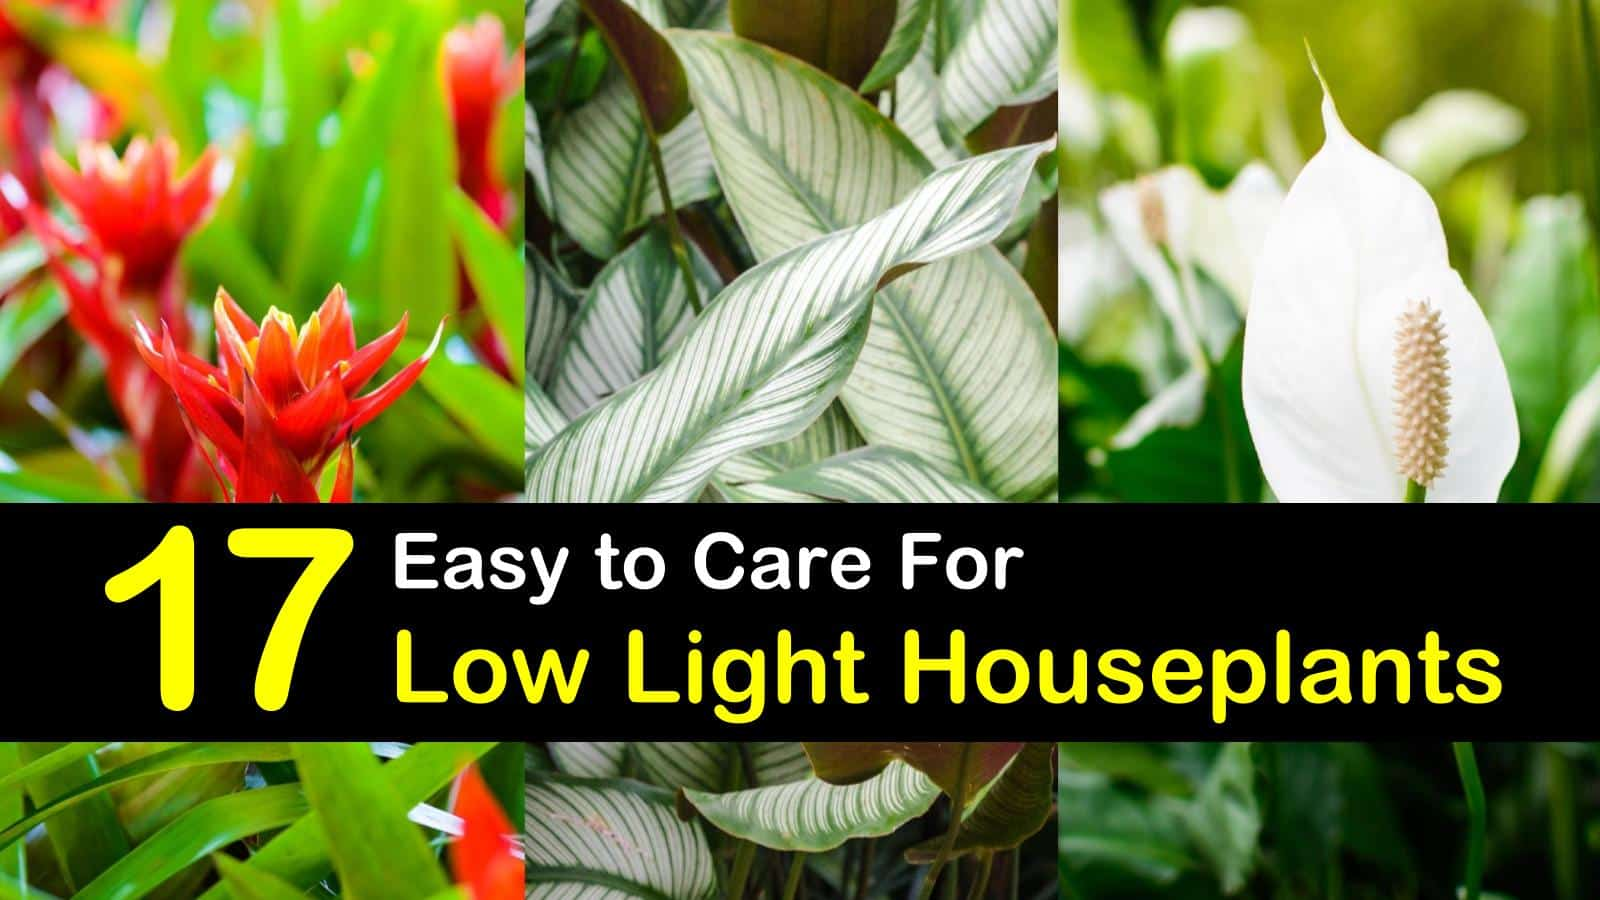 17 easy to care for low light houseplants you will love low light houseplants titlimg1 izmirmasajfo